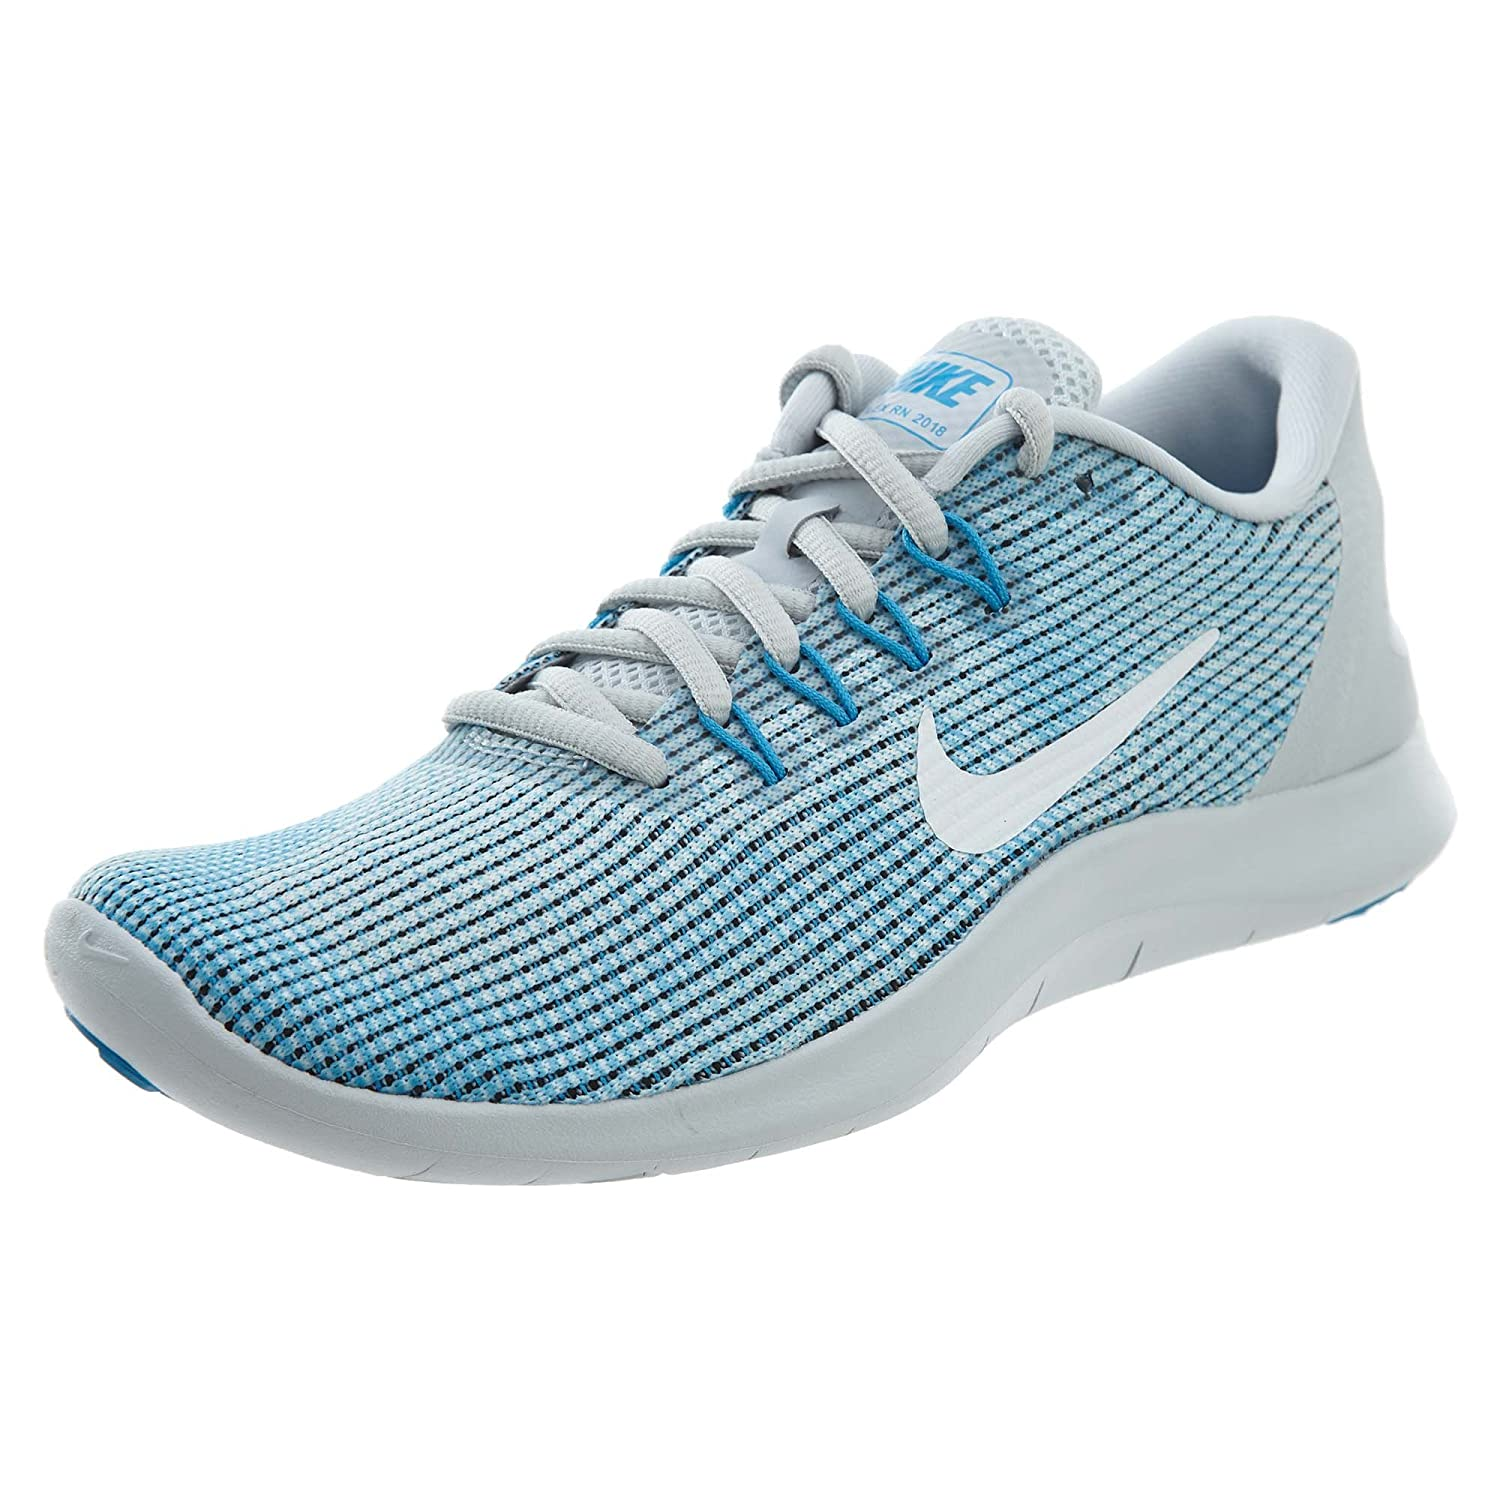 NIKE Women's Flex RN 2018 Running Shoe B075ZY6S14 5.5 B(M) US|Pure Platinum/White-equator Blue